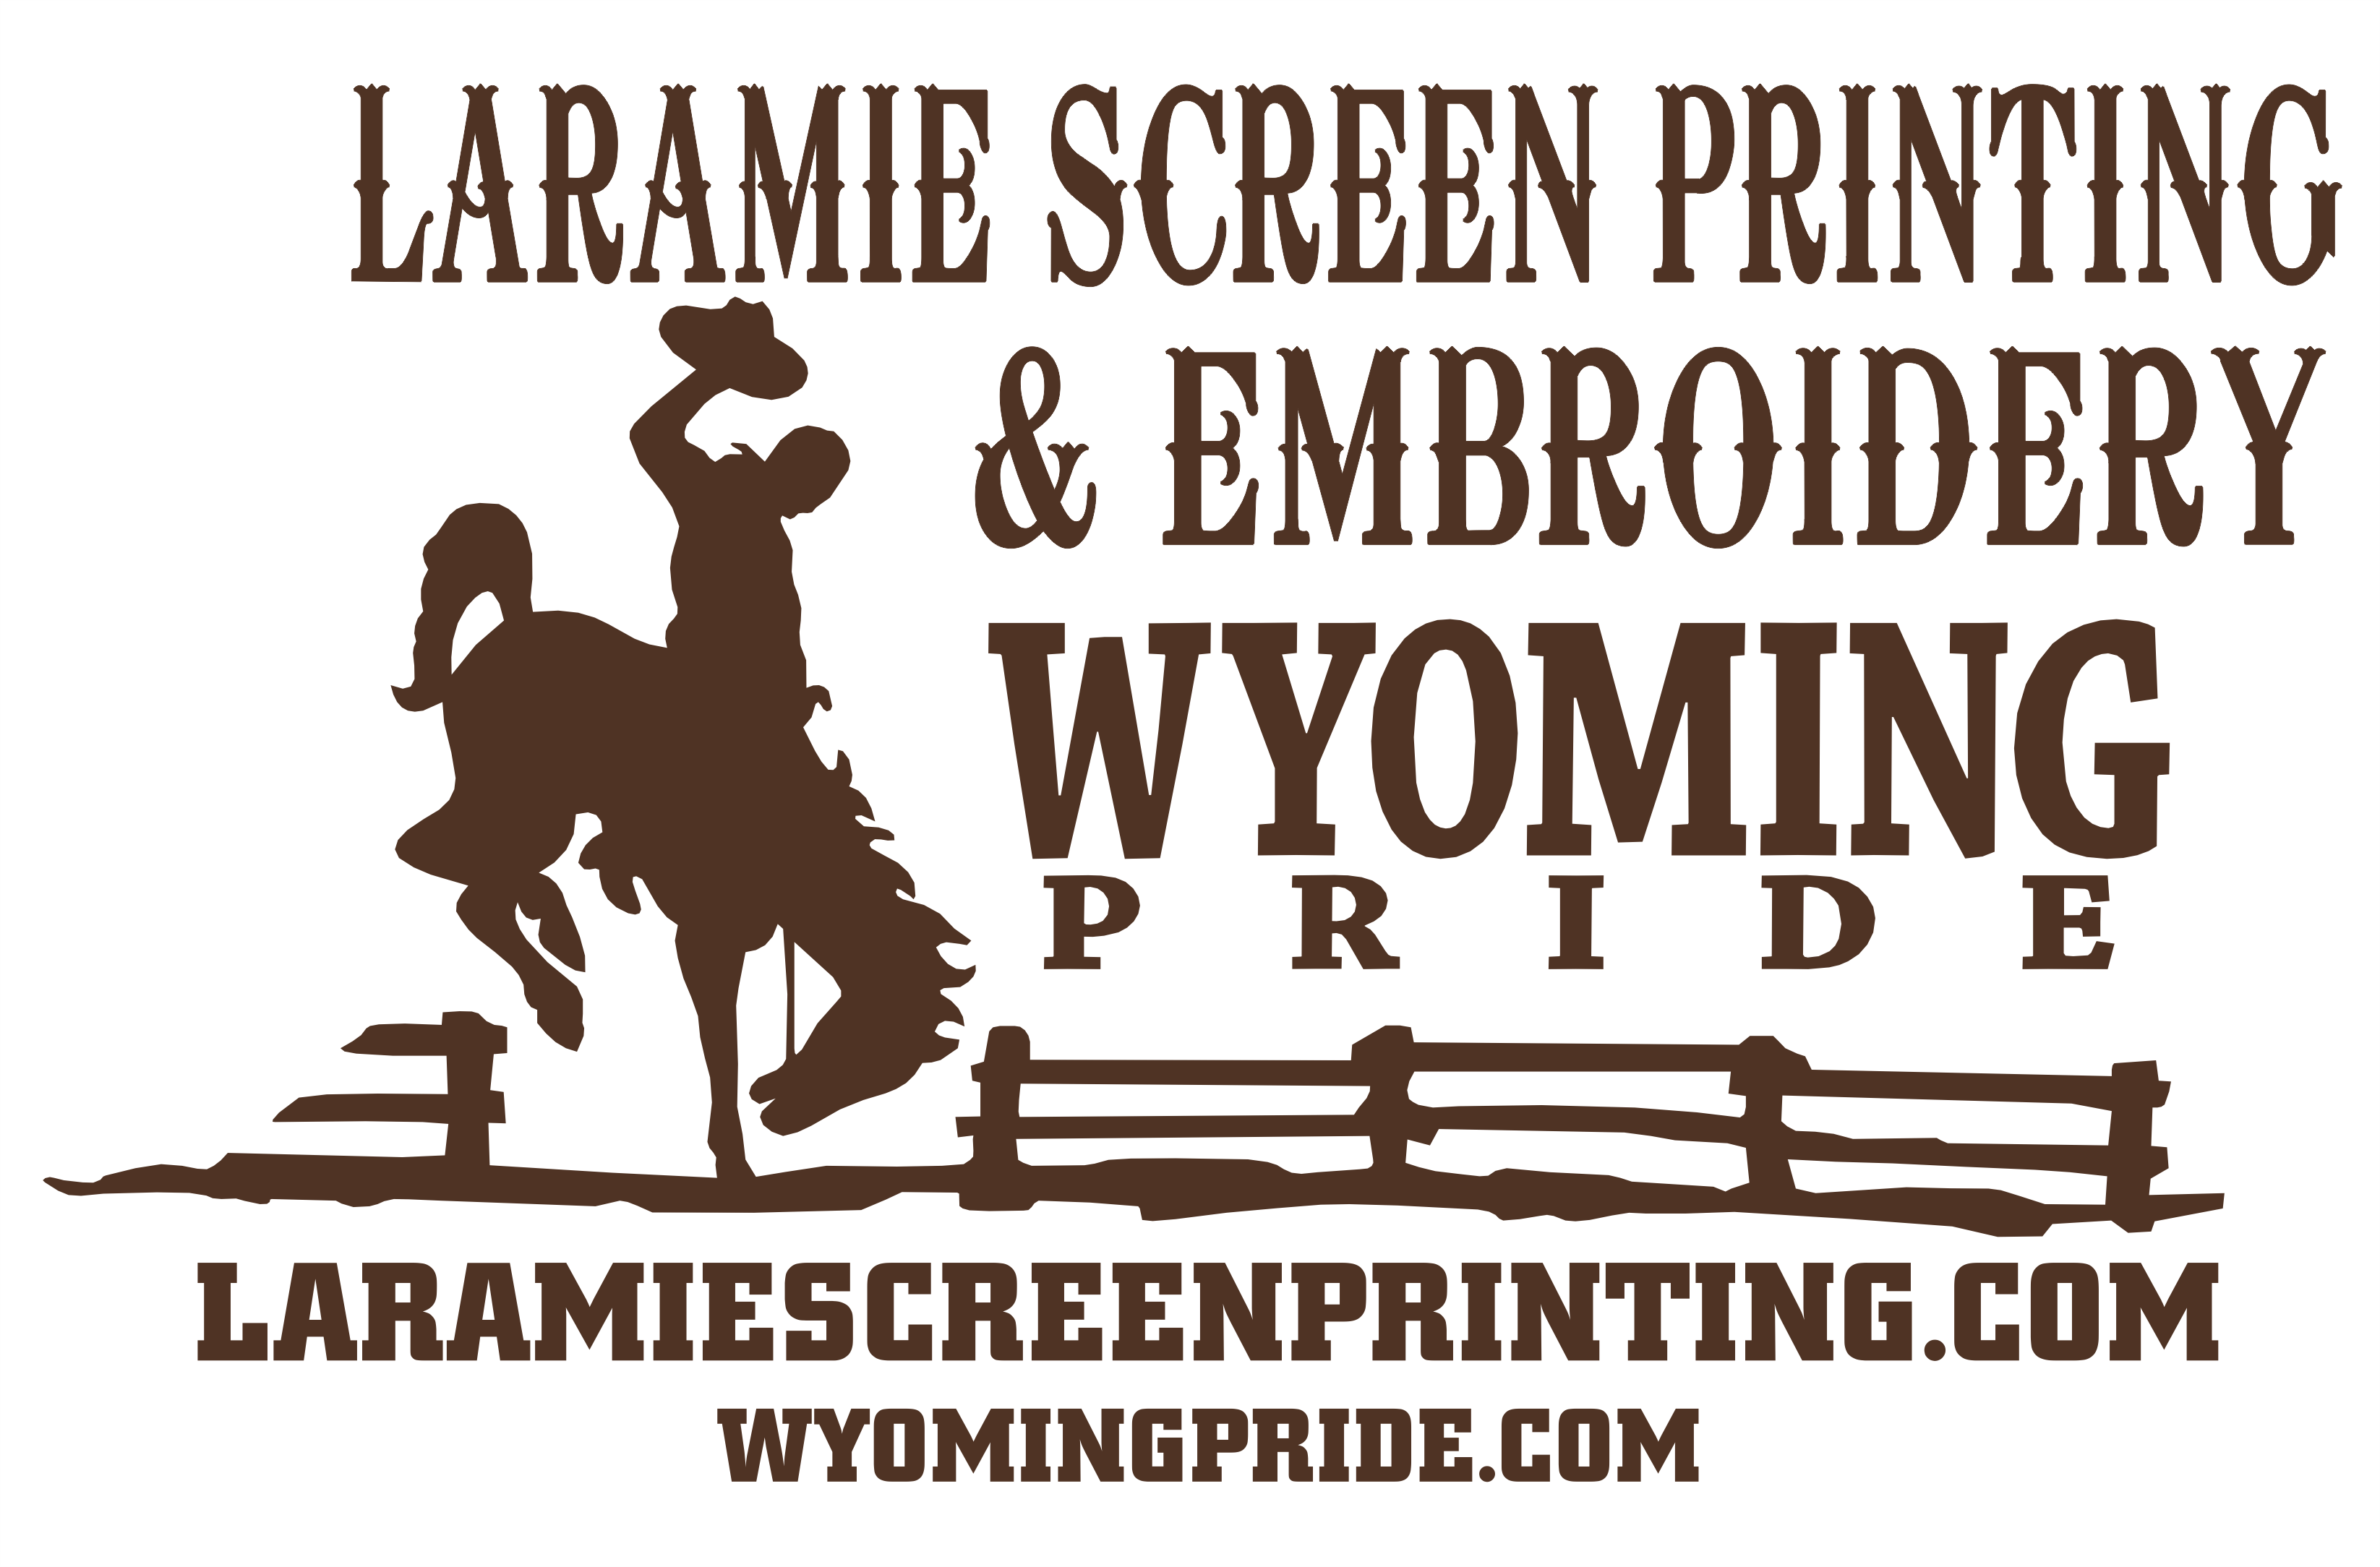 Laramie Screen Printing & Embroidery